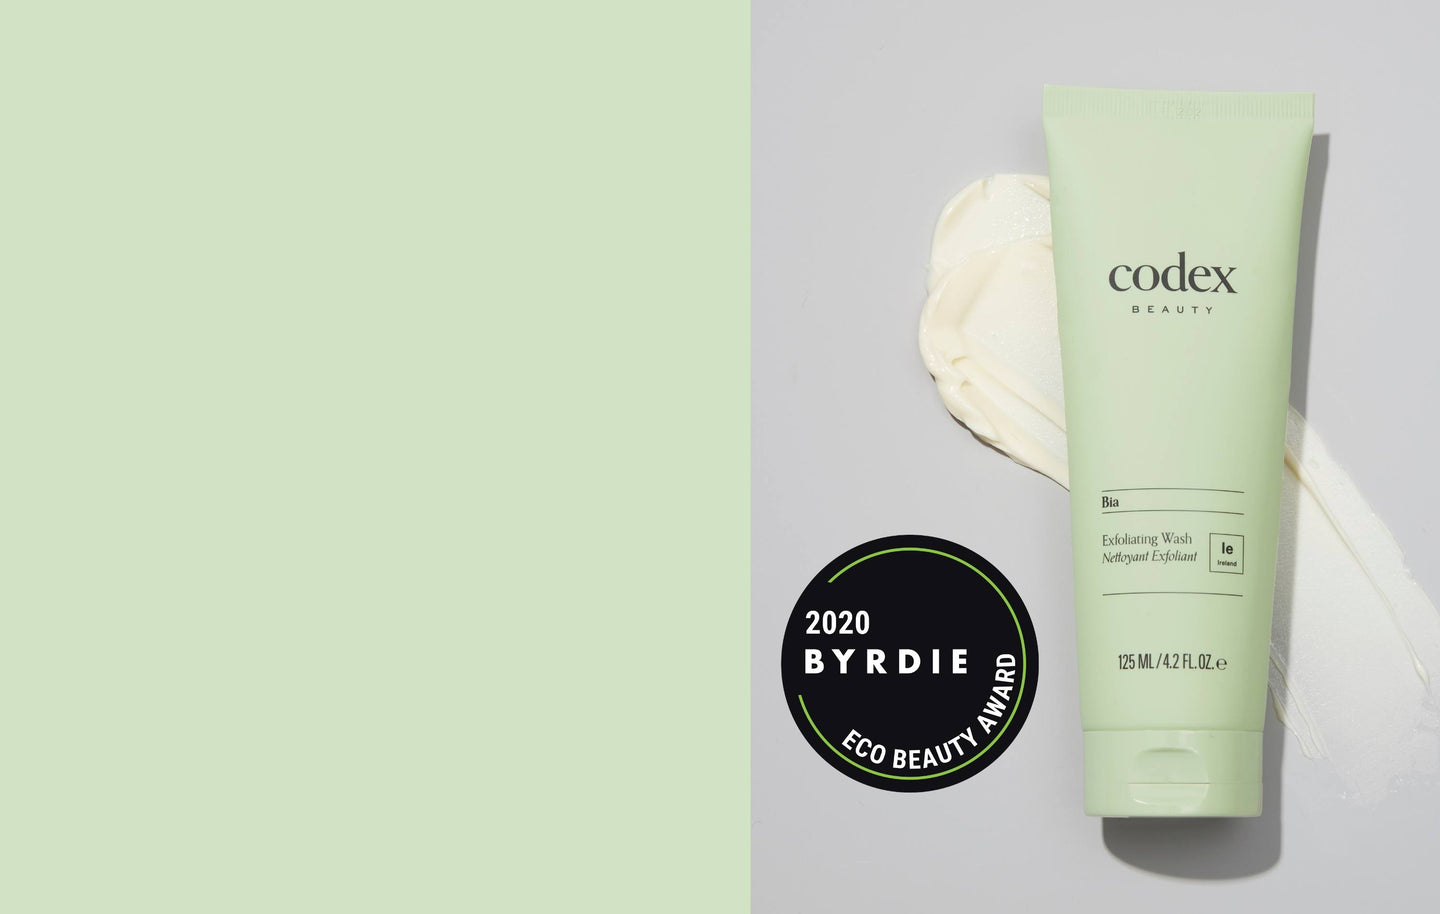 Byrdie Award Winner 2020 Bia Exfoliating Wash